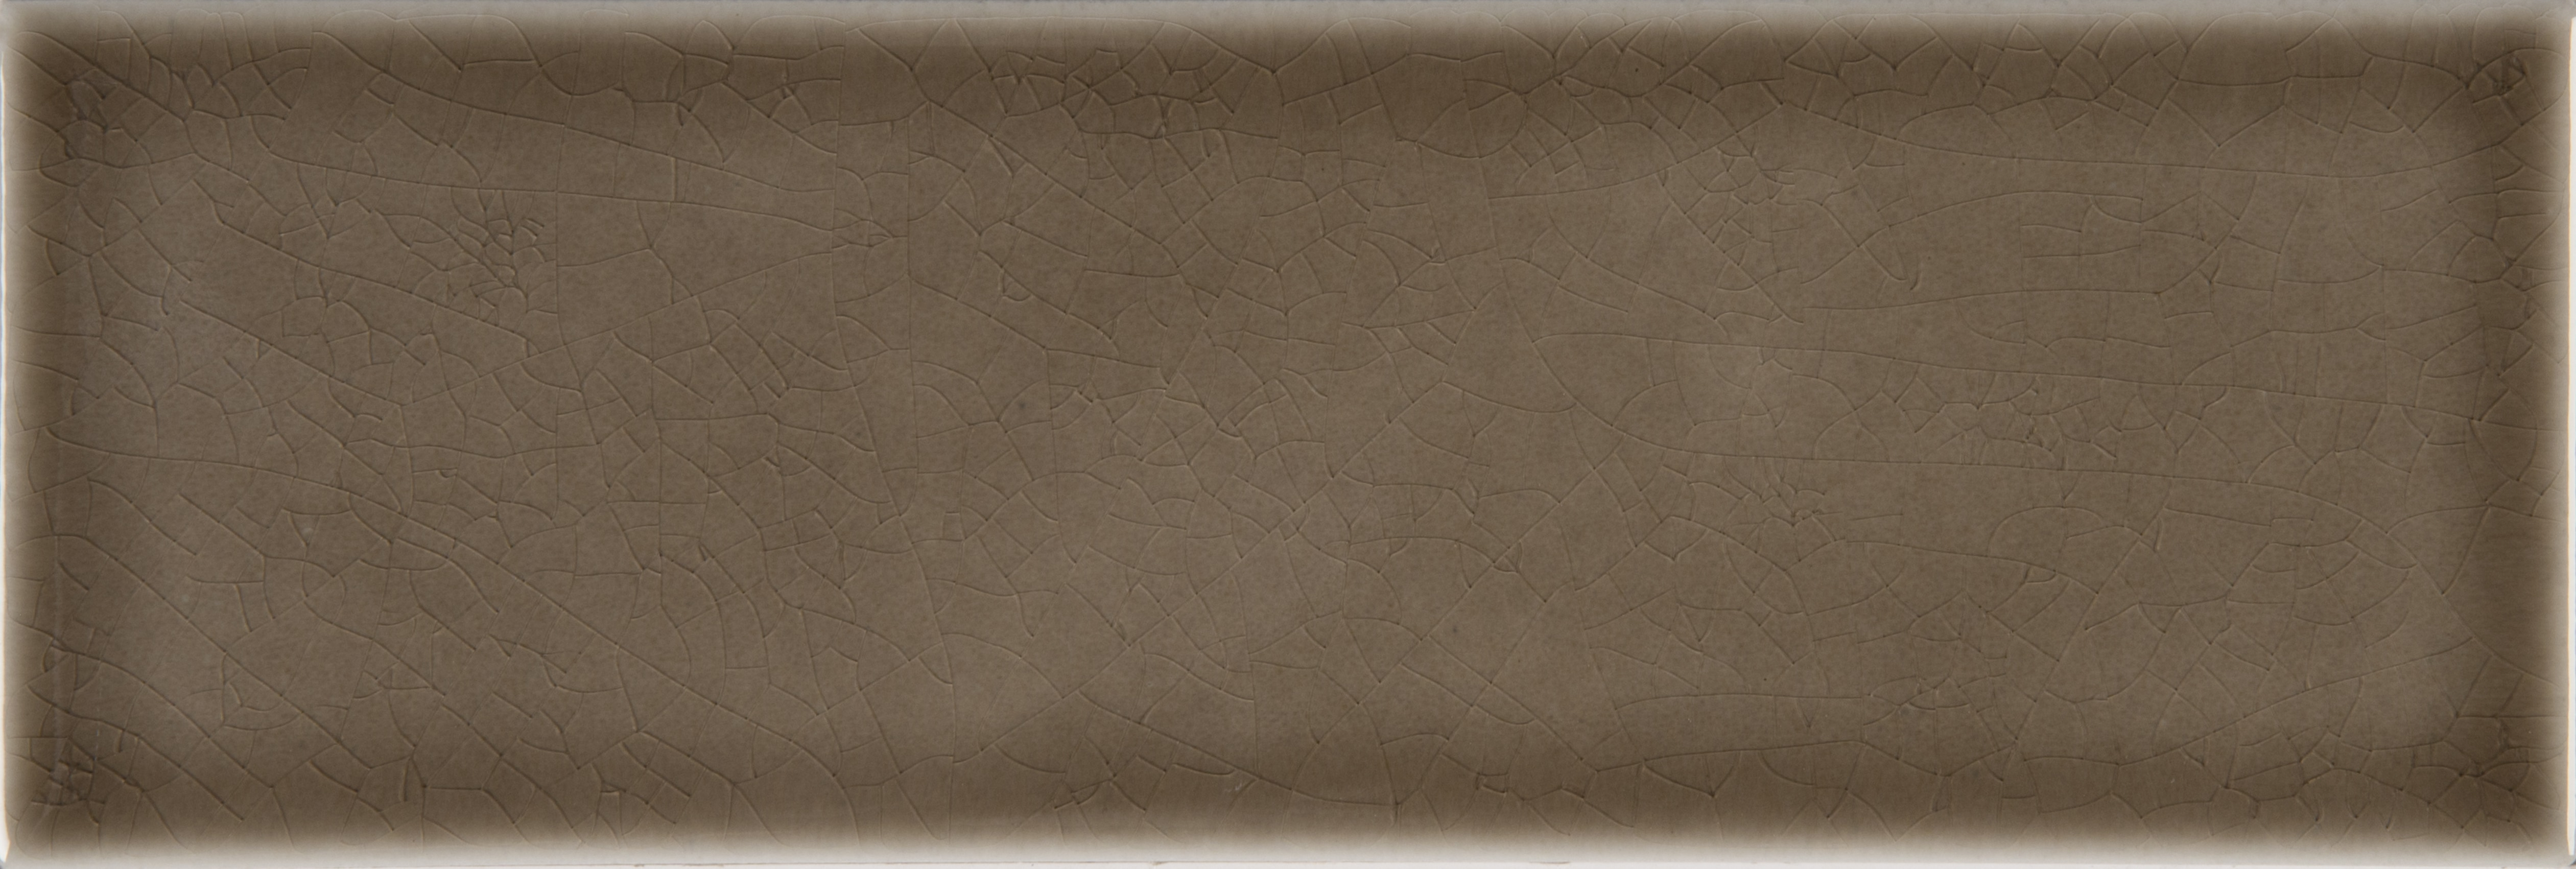 """Glazed Handcrafted / 4""""x12"""" / Glossy Ceramic Tile - Artisan Taupe 0"""